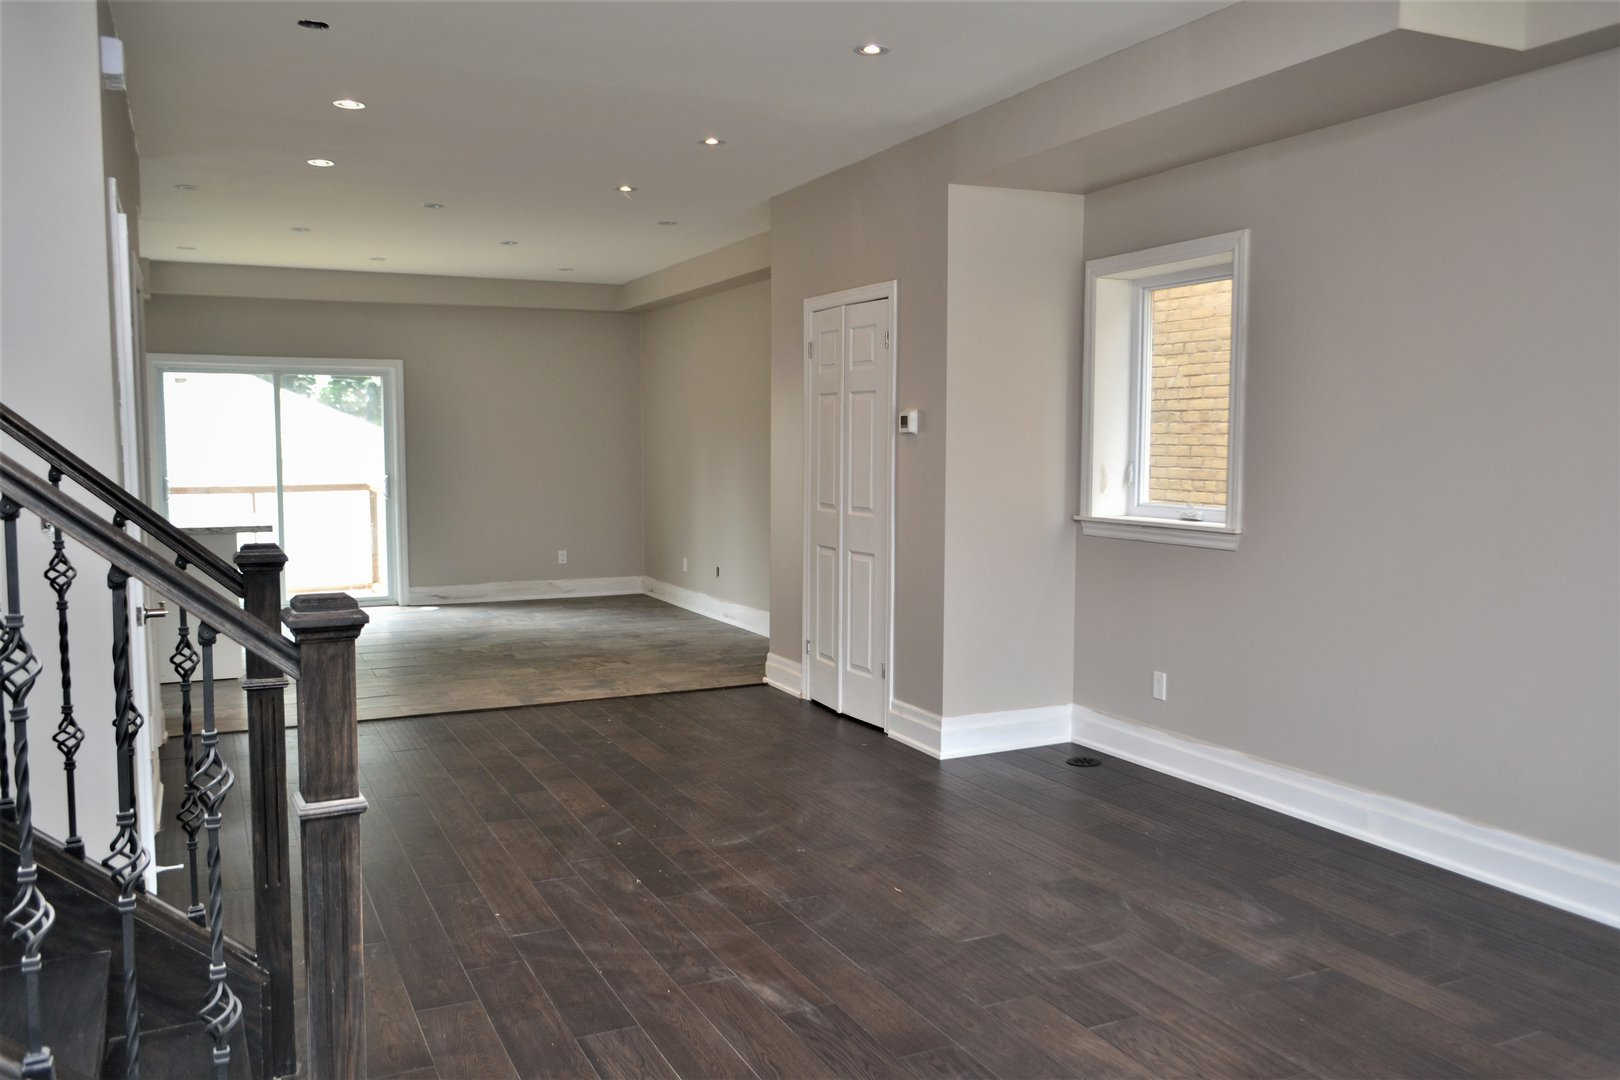 House for rent at 20 Sixth St, Etobicoke, ON. This is the empty room with natural light, carpet and hardwood floor.